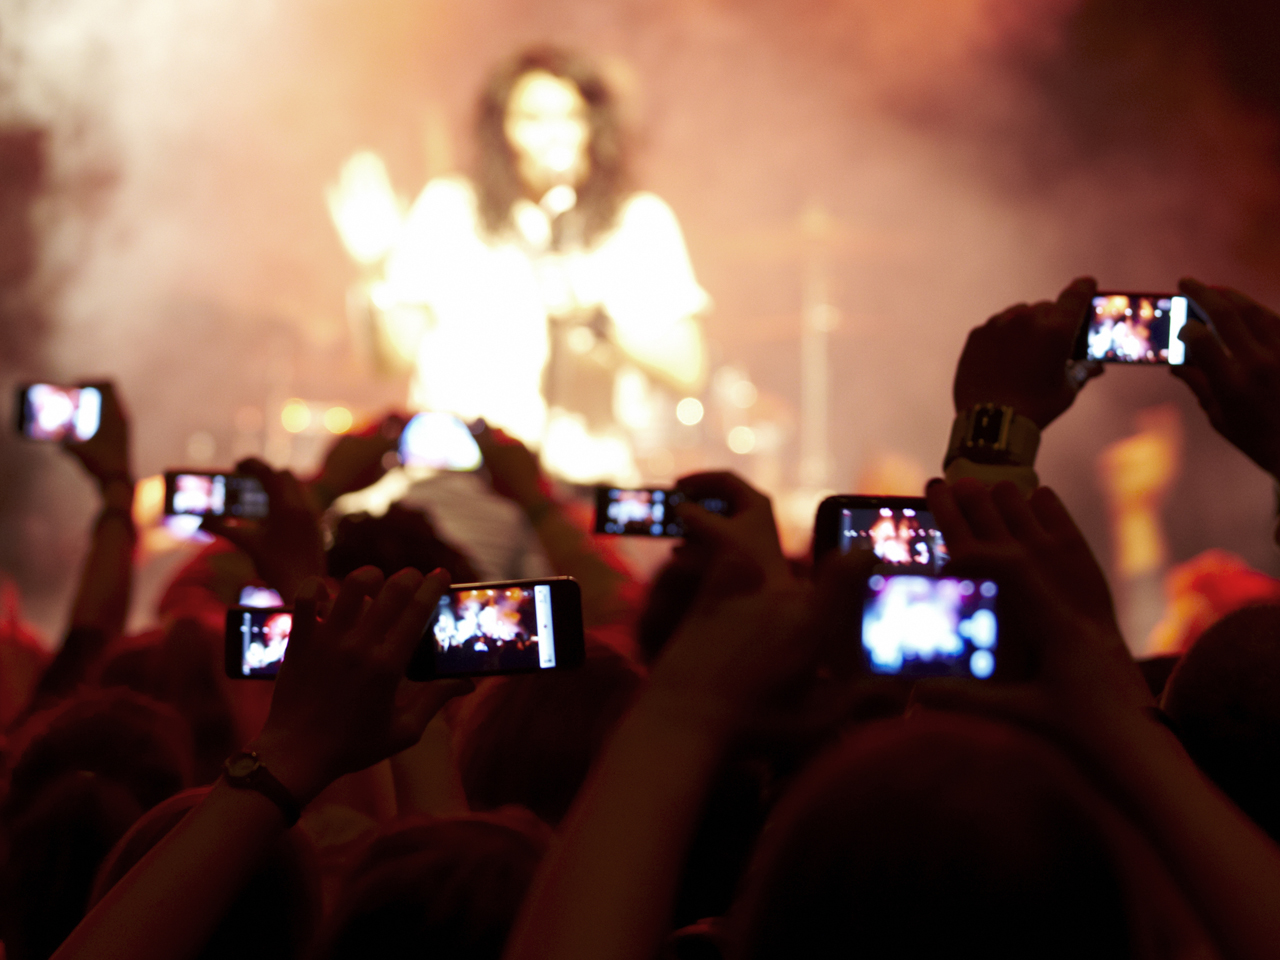 Cellphones at concerts